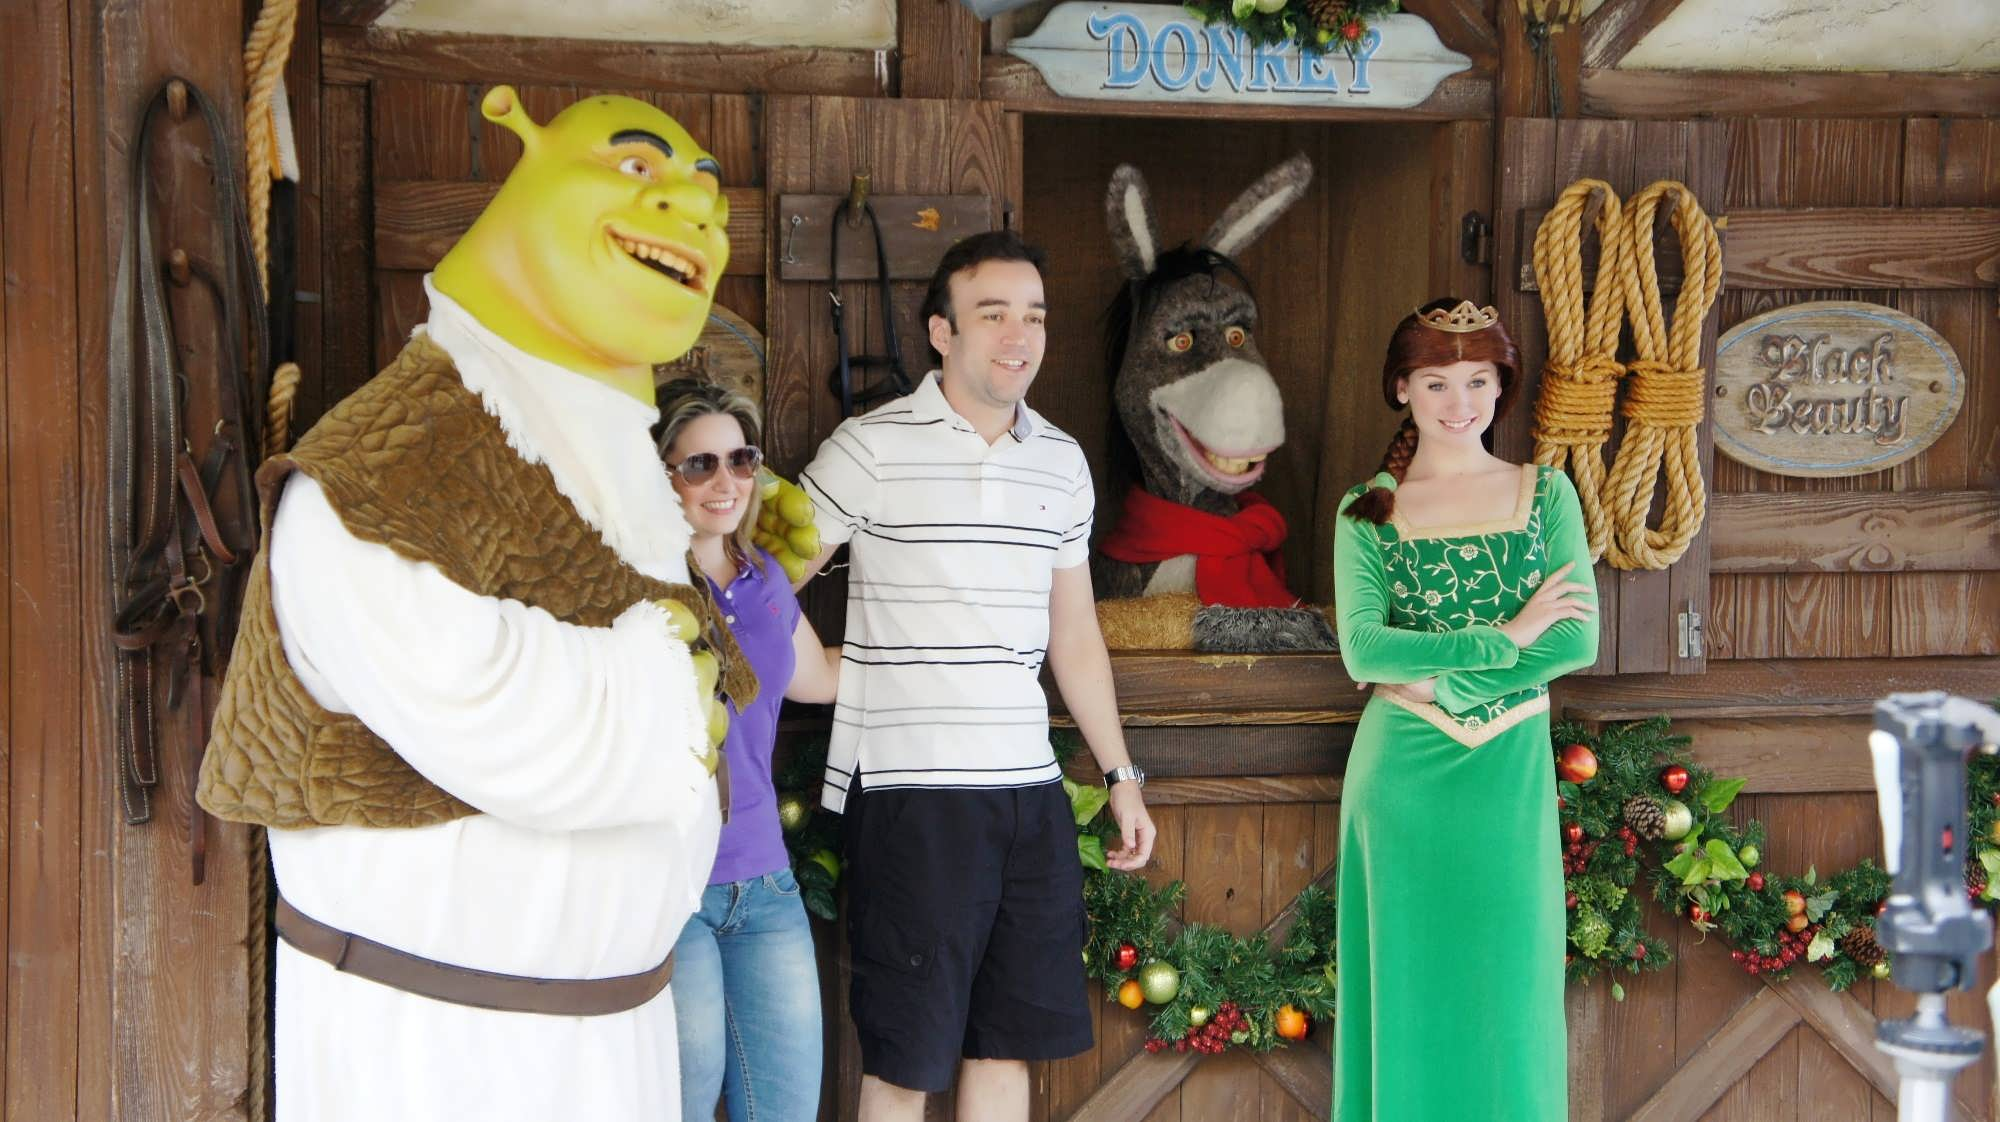 Meet the Shrek family at Universal Studios Florida.